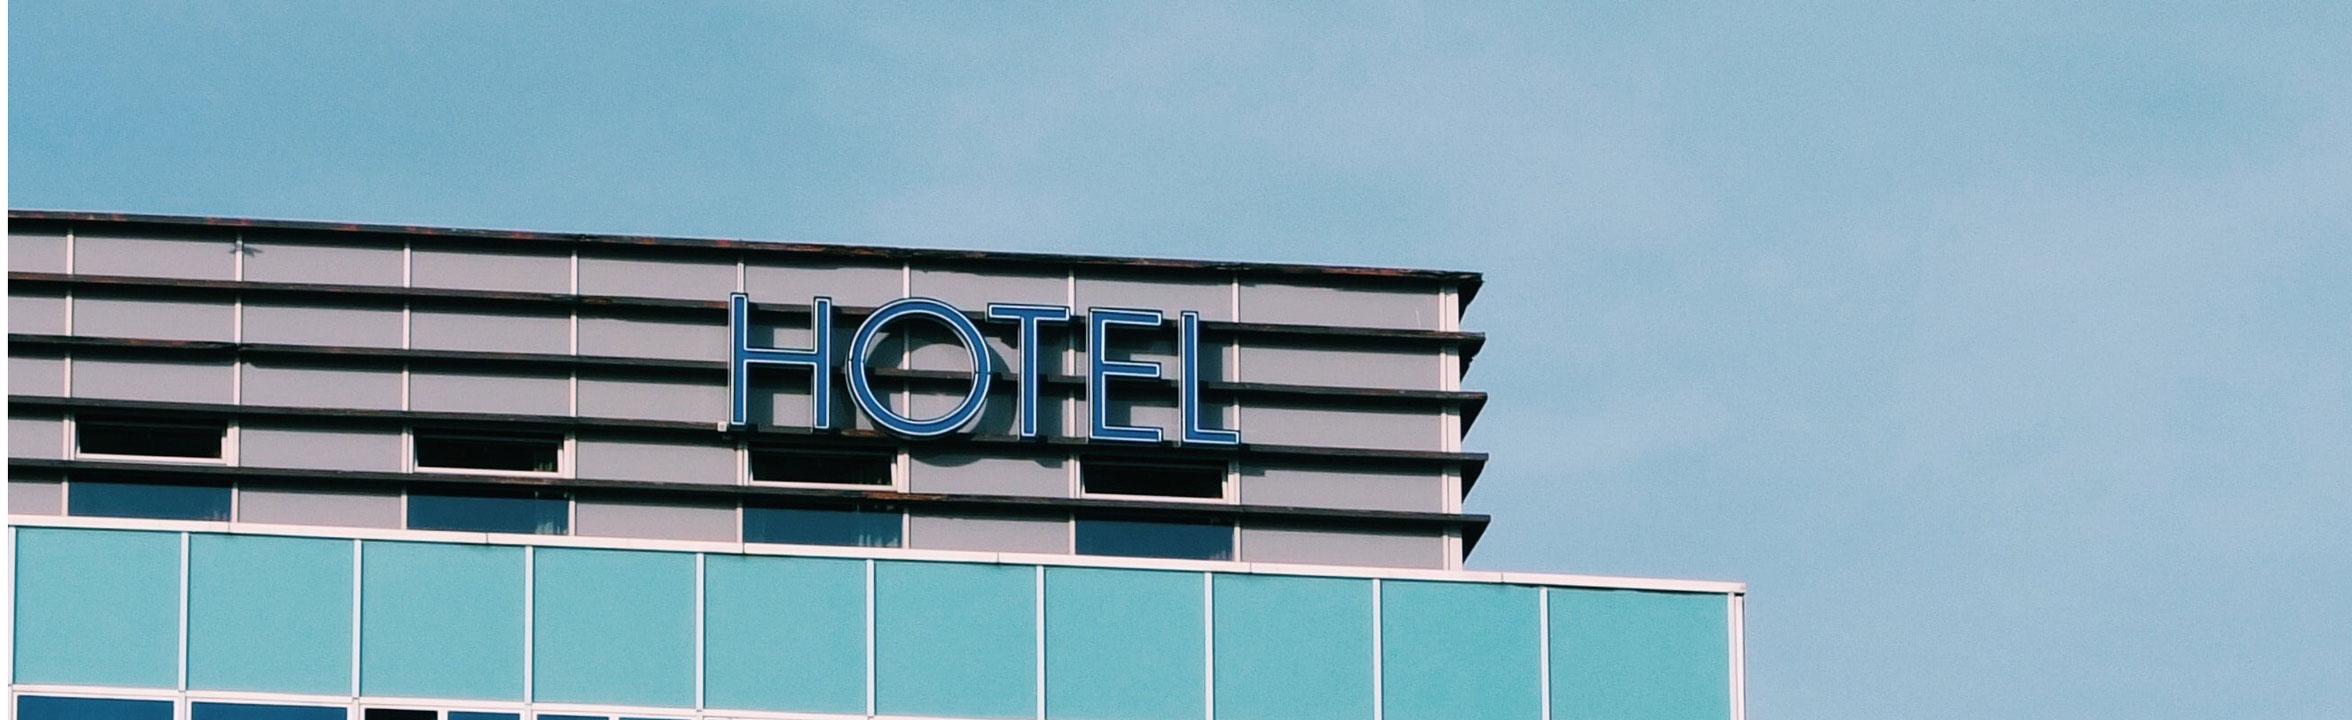 facade of the top of high rise hotel, modern blue